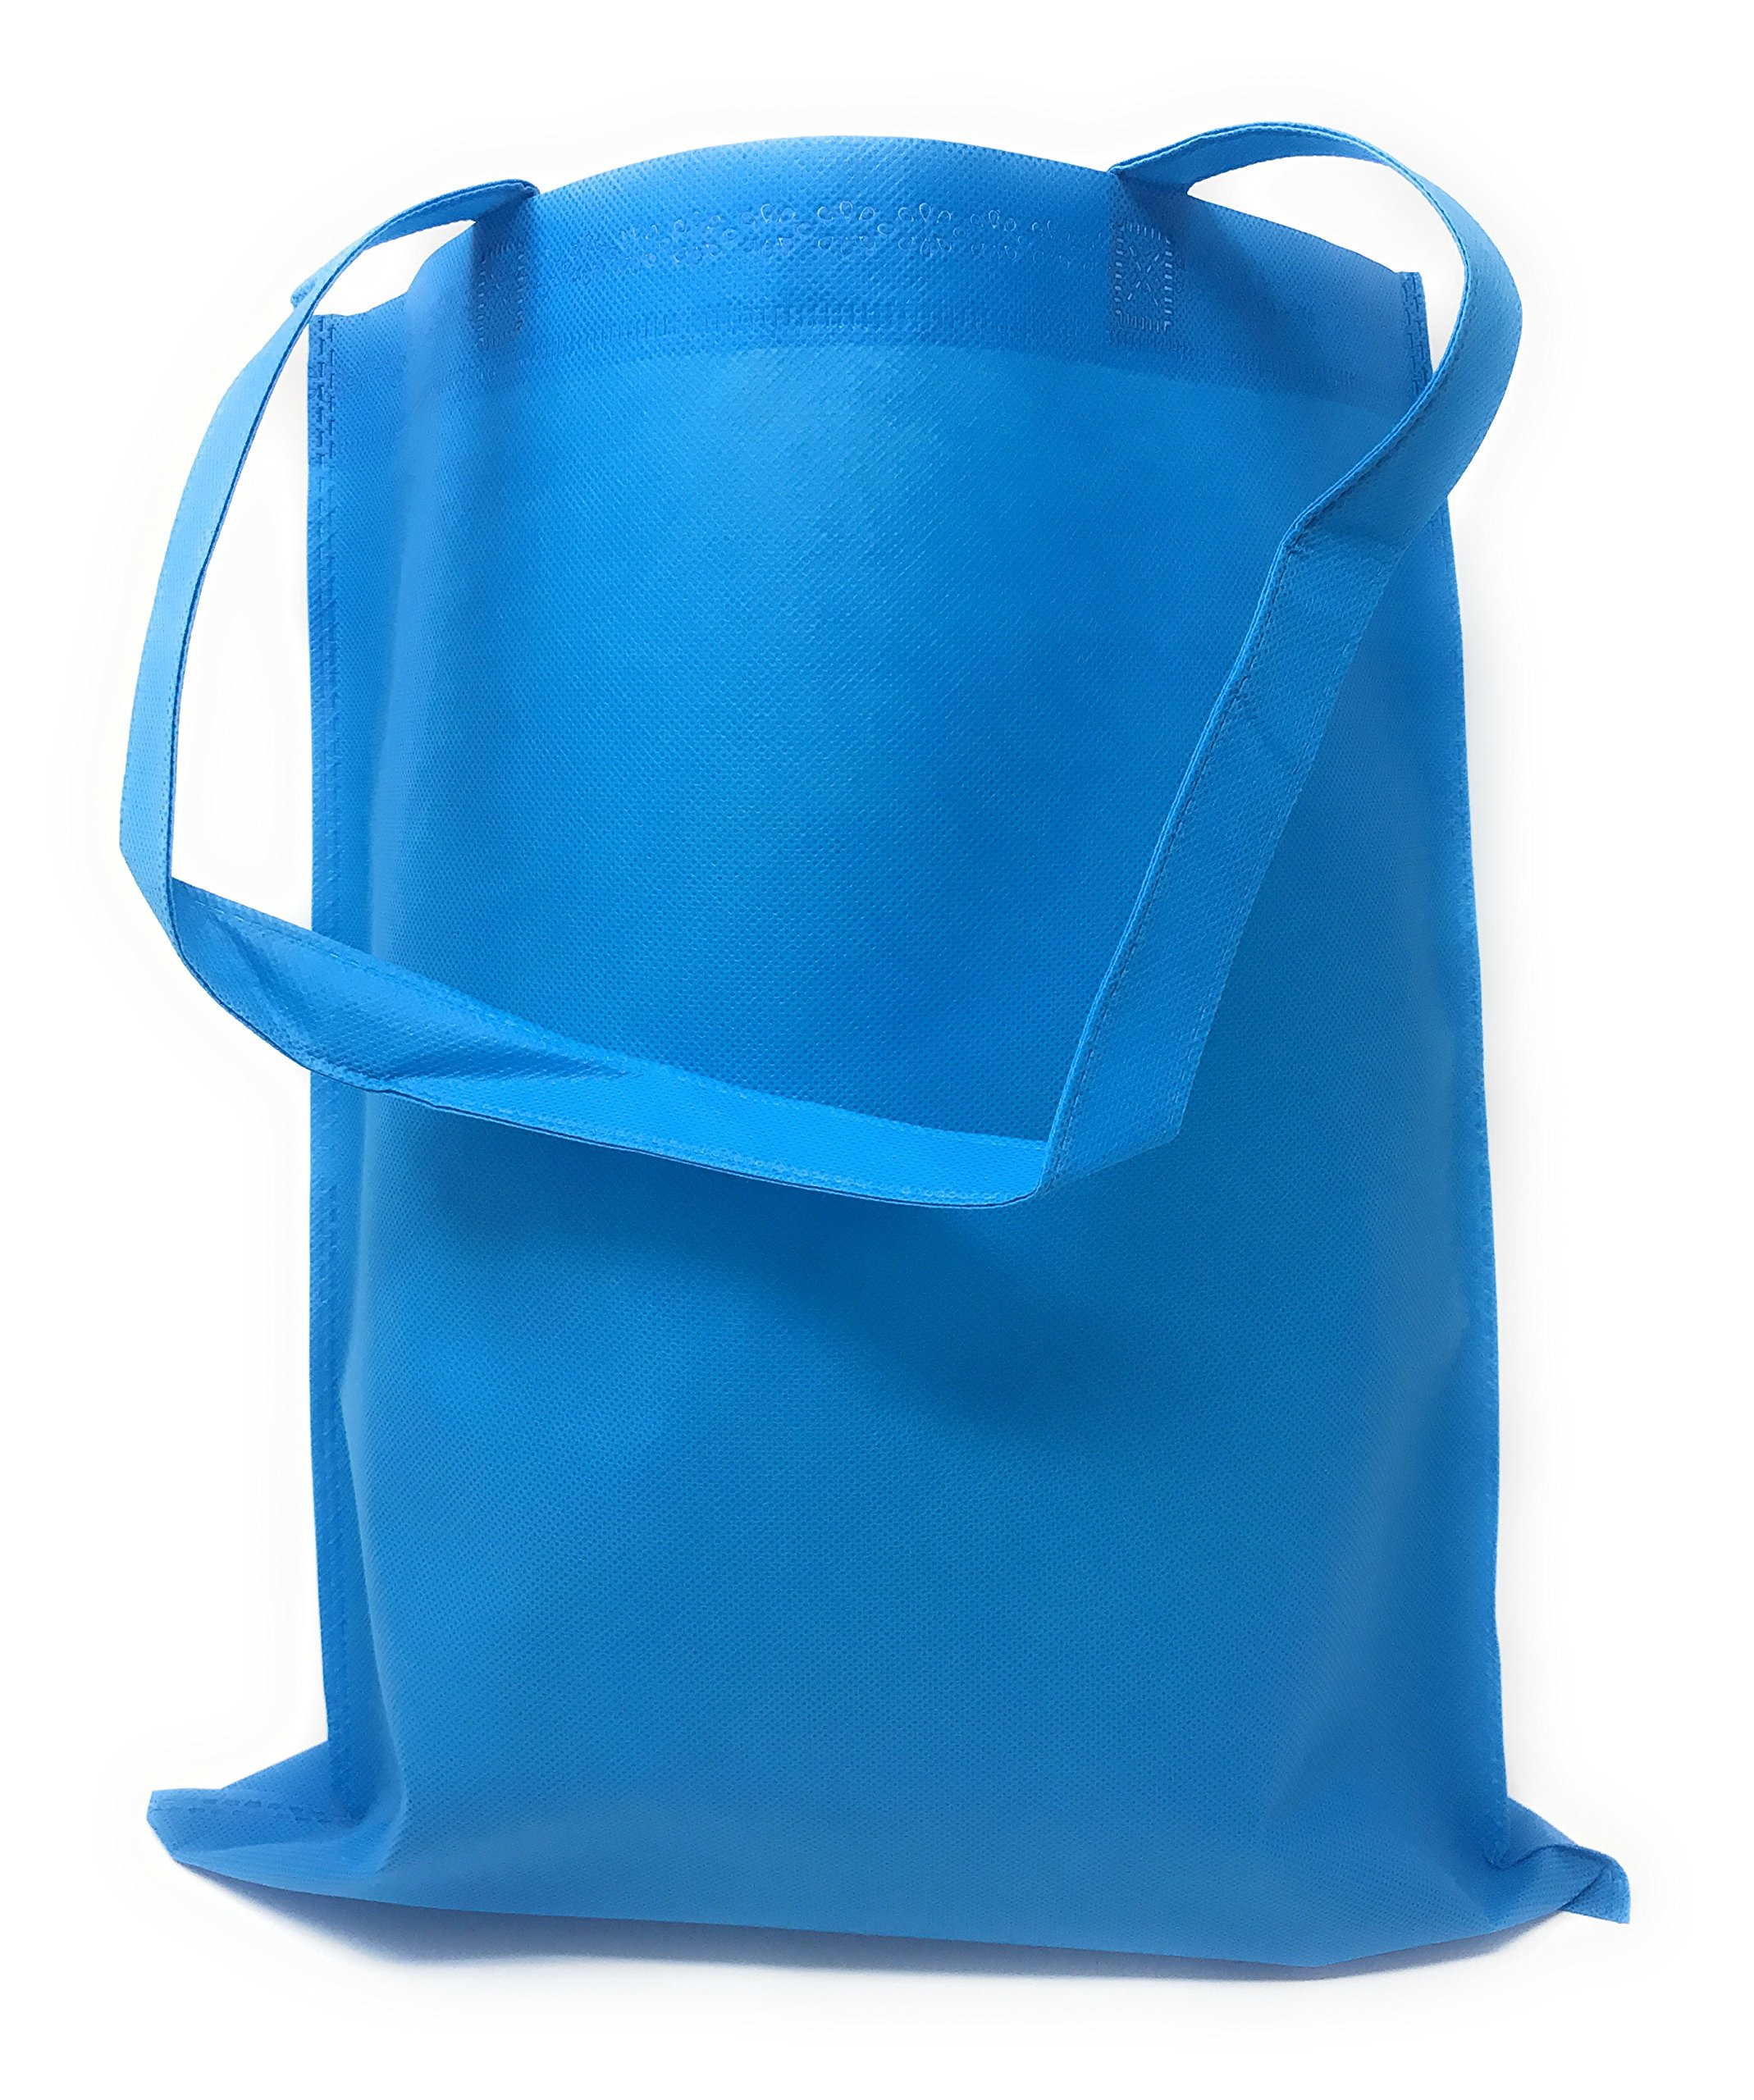 50 Bulk Tote Bag Mega Pack - Reusable Shopping Bags (Blue)